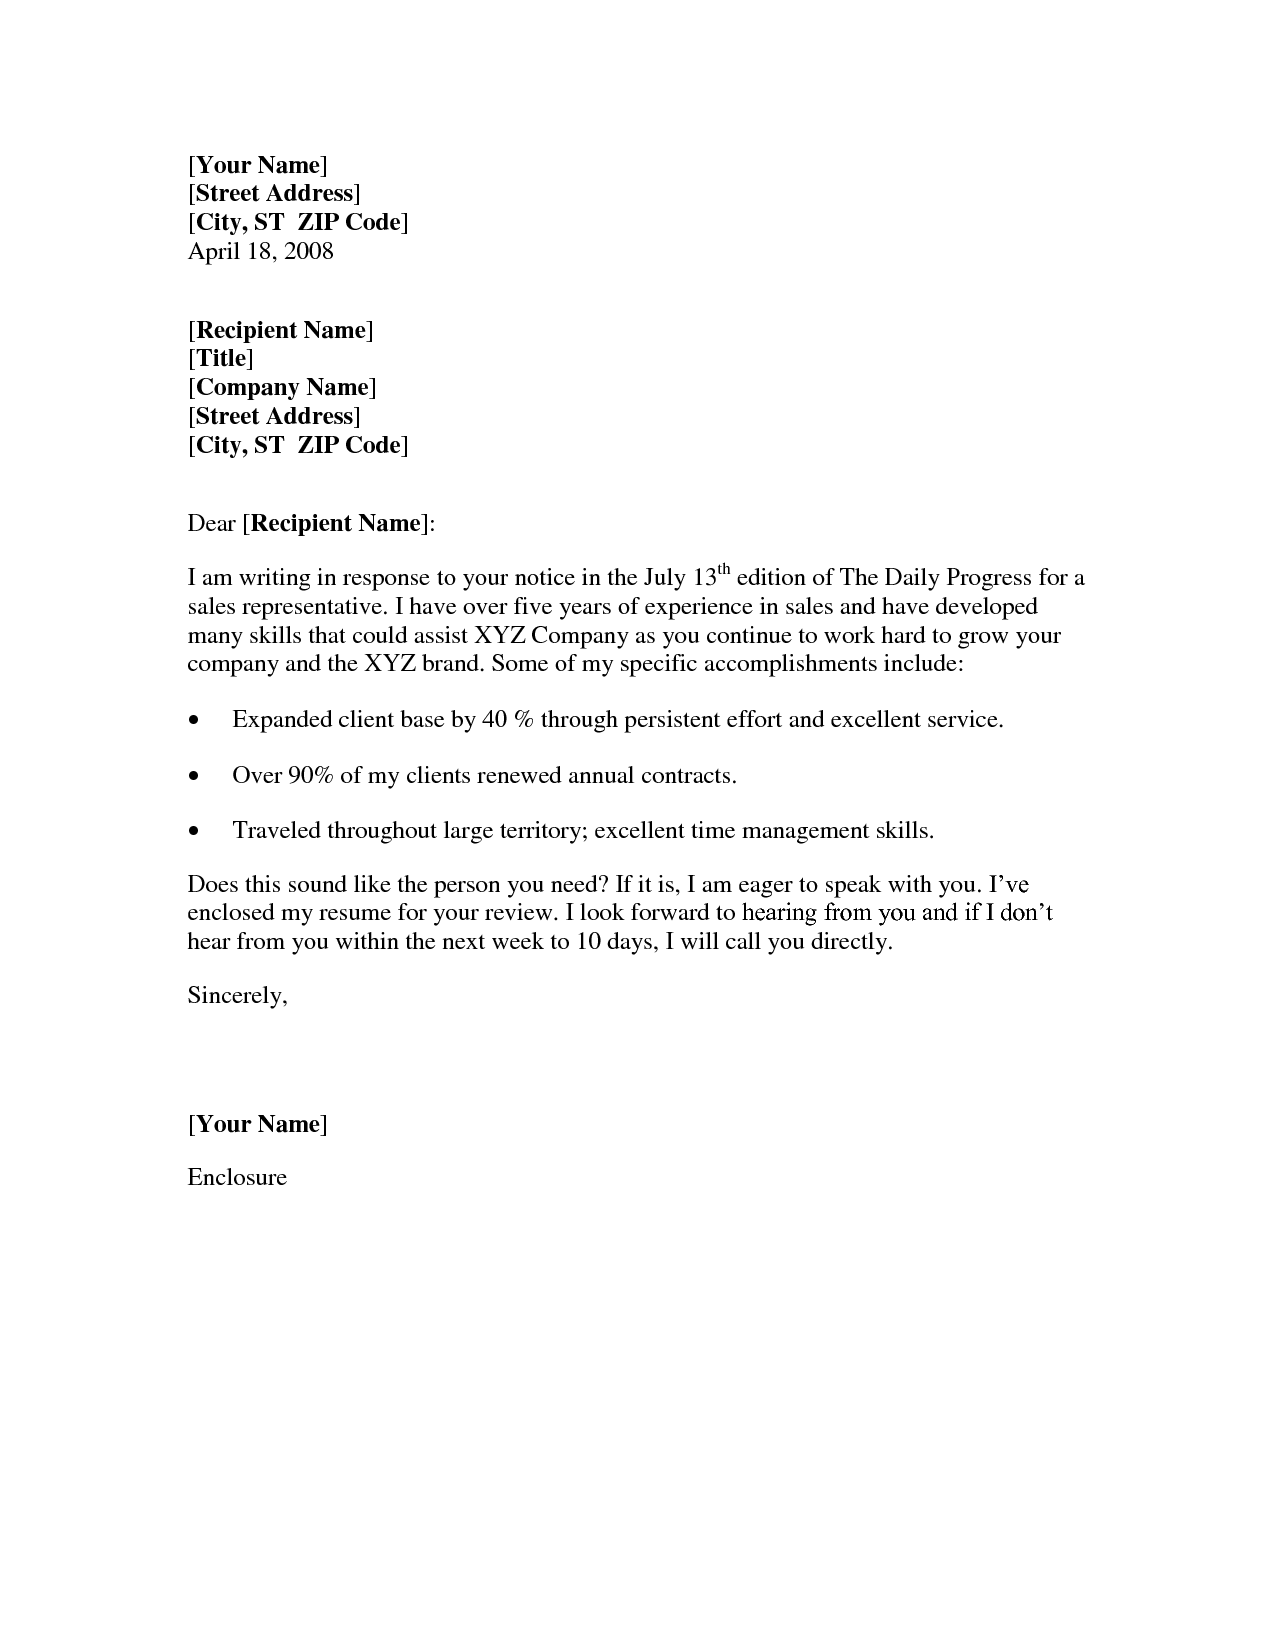 Free Cover Letter And Resume Builder Samples Printable Fax Format